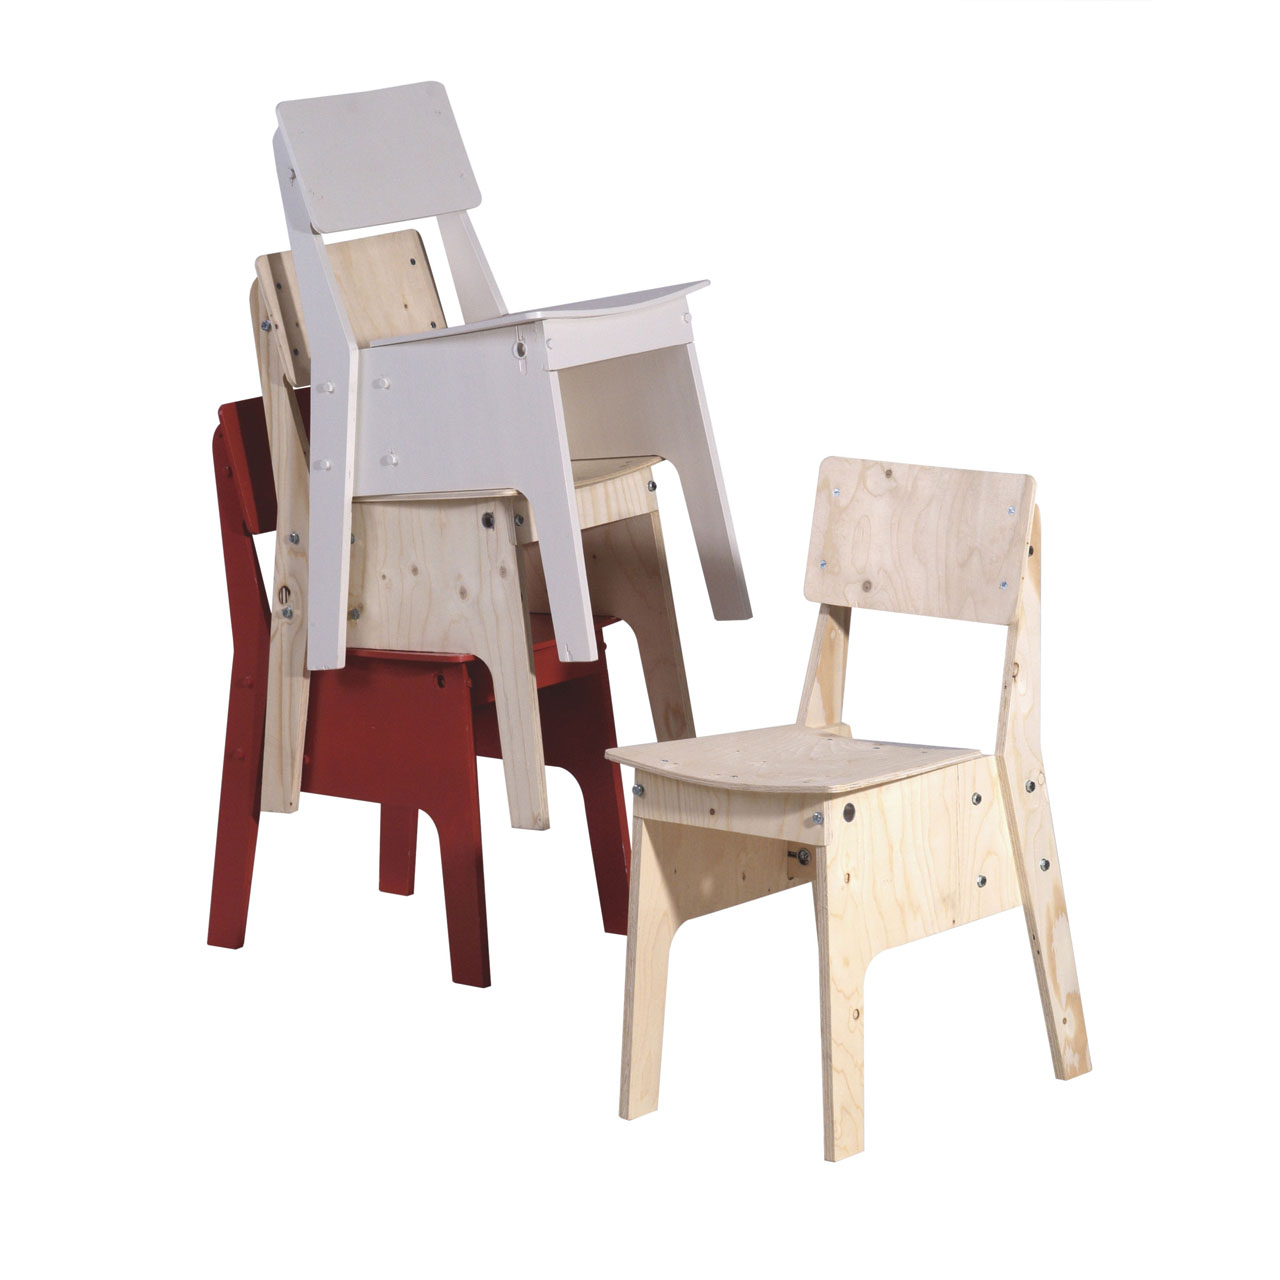 Crisis Chair by Piet Hein Eek in Plywood